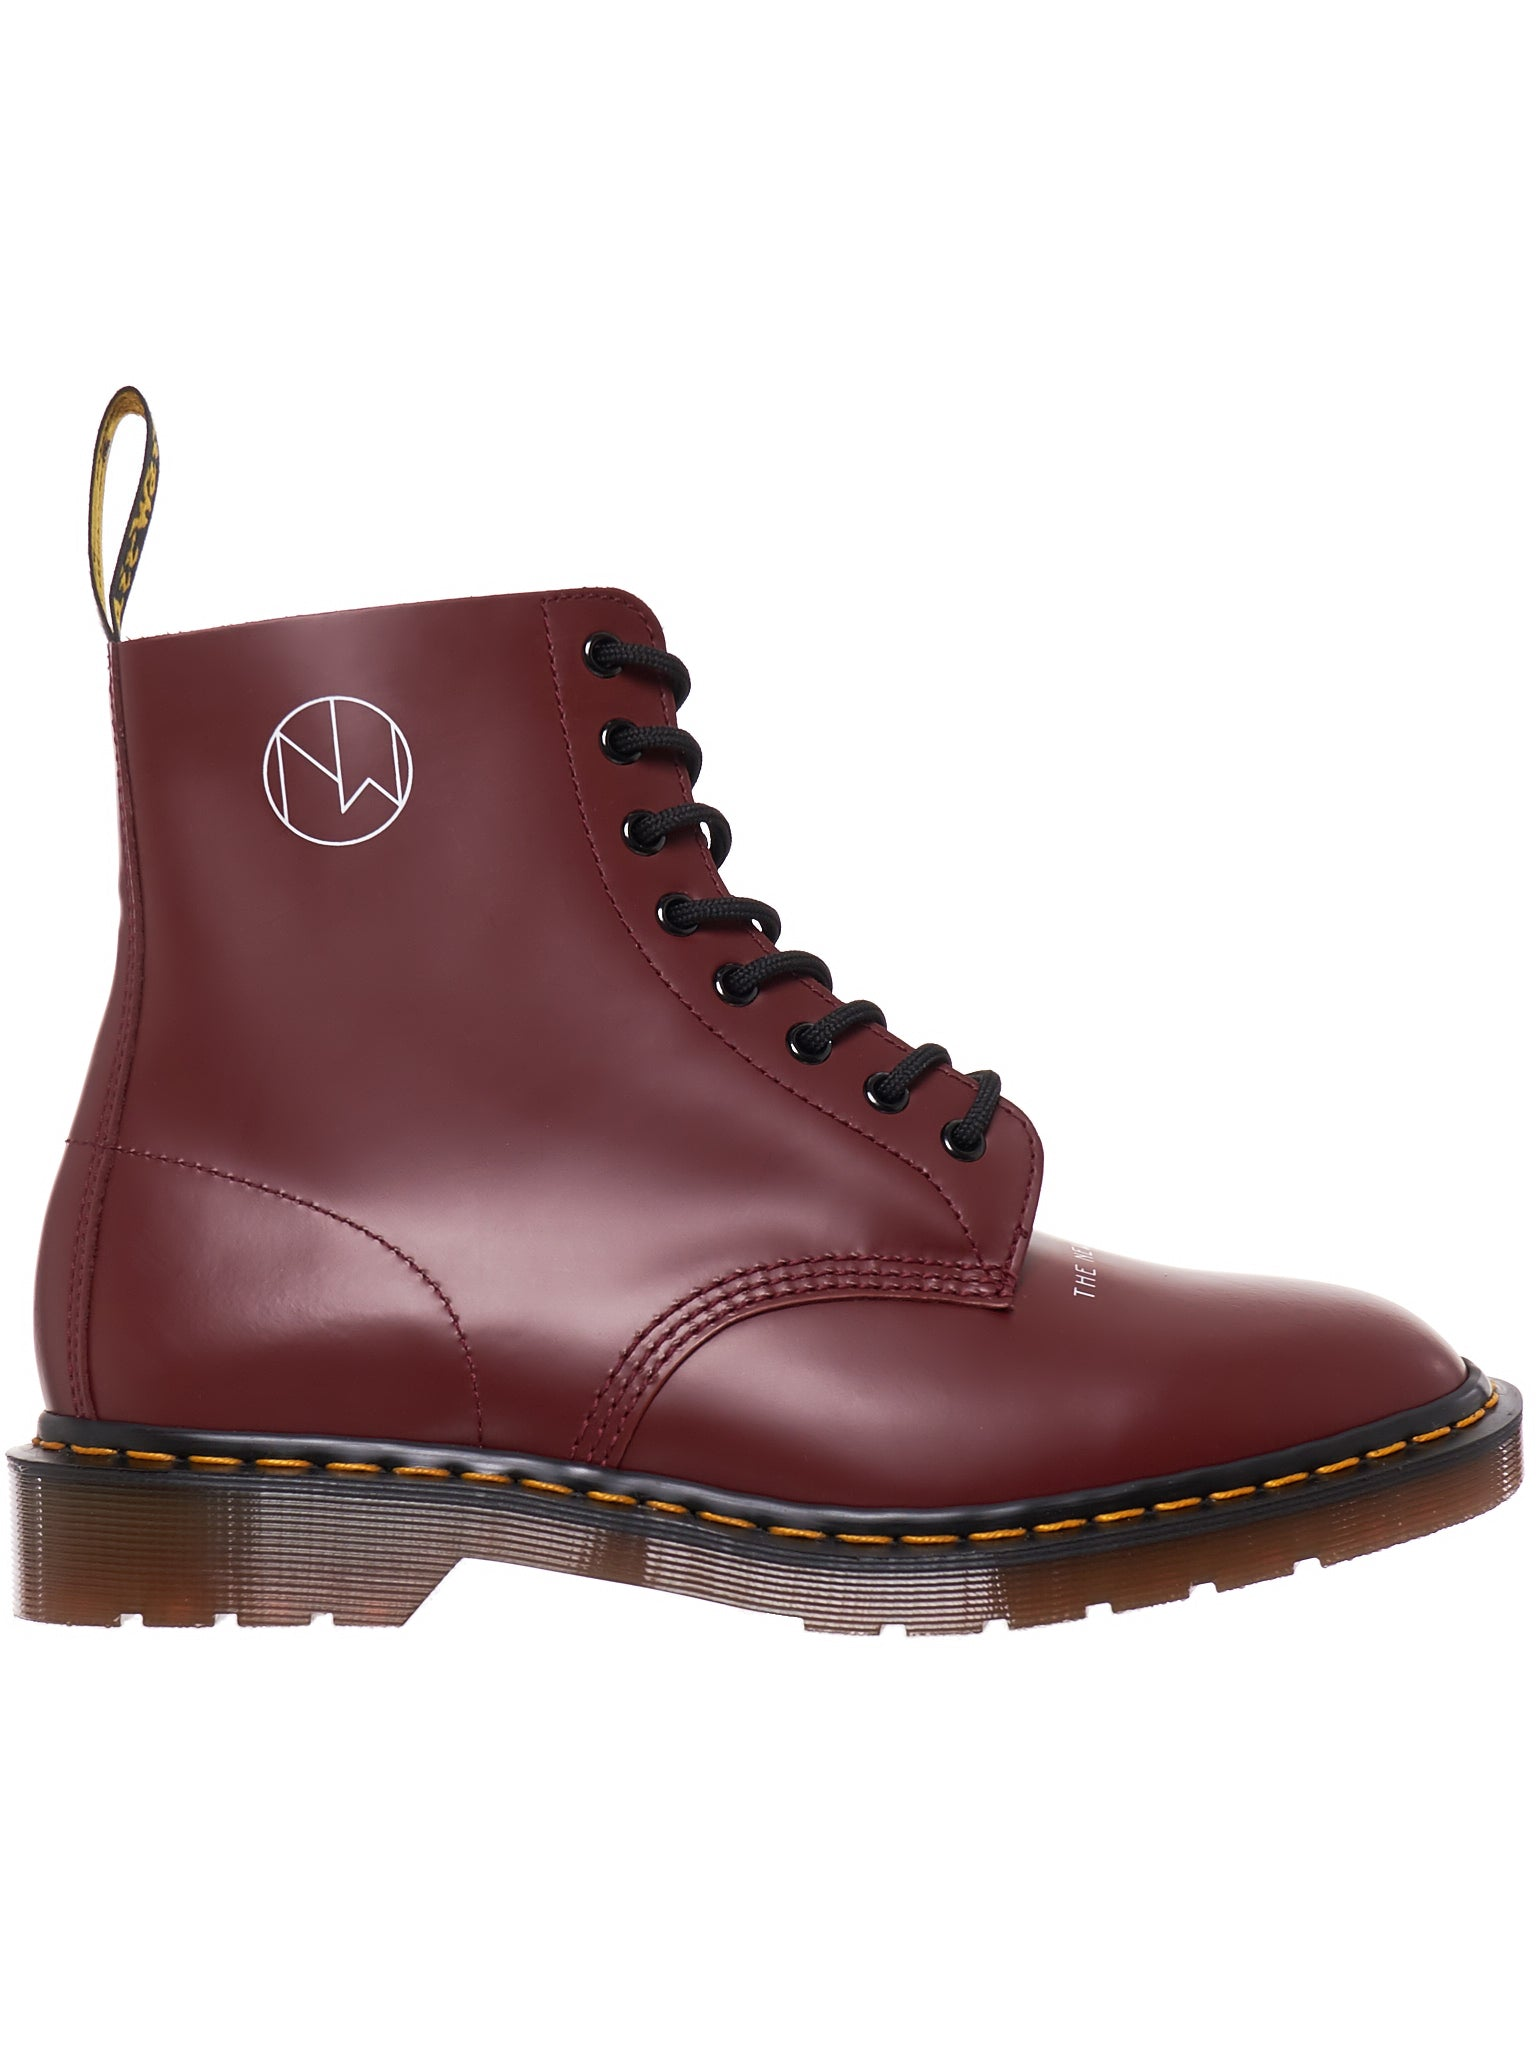 Undercover x Dr. Martens Boot - Hlorenzo Front